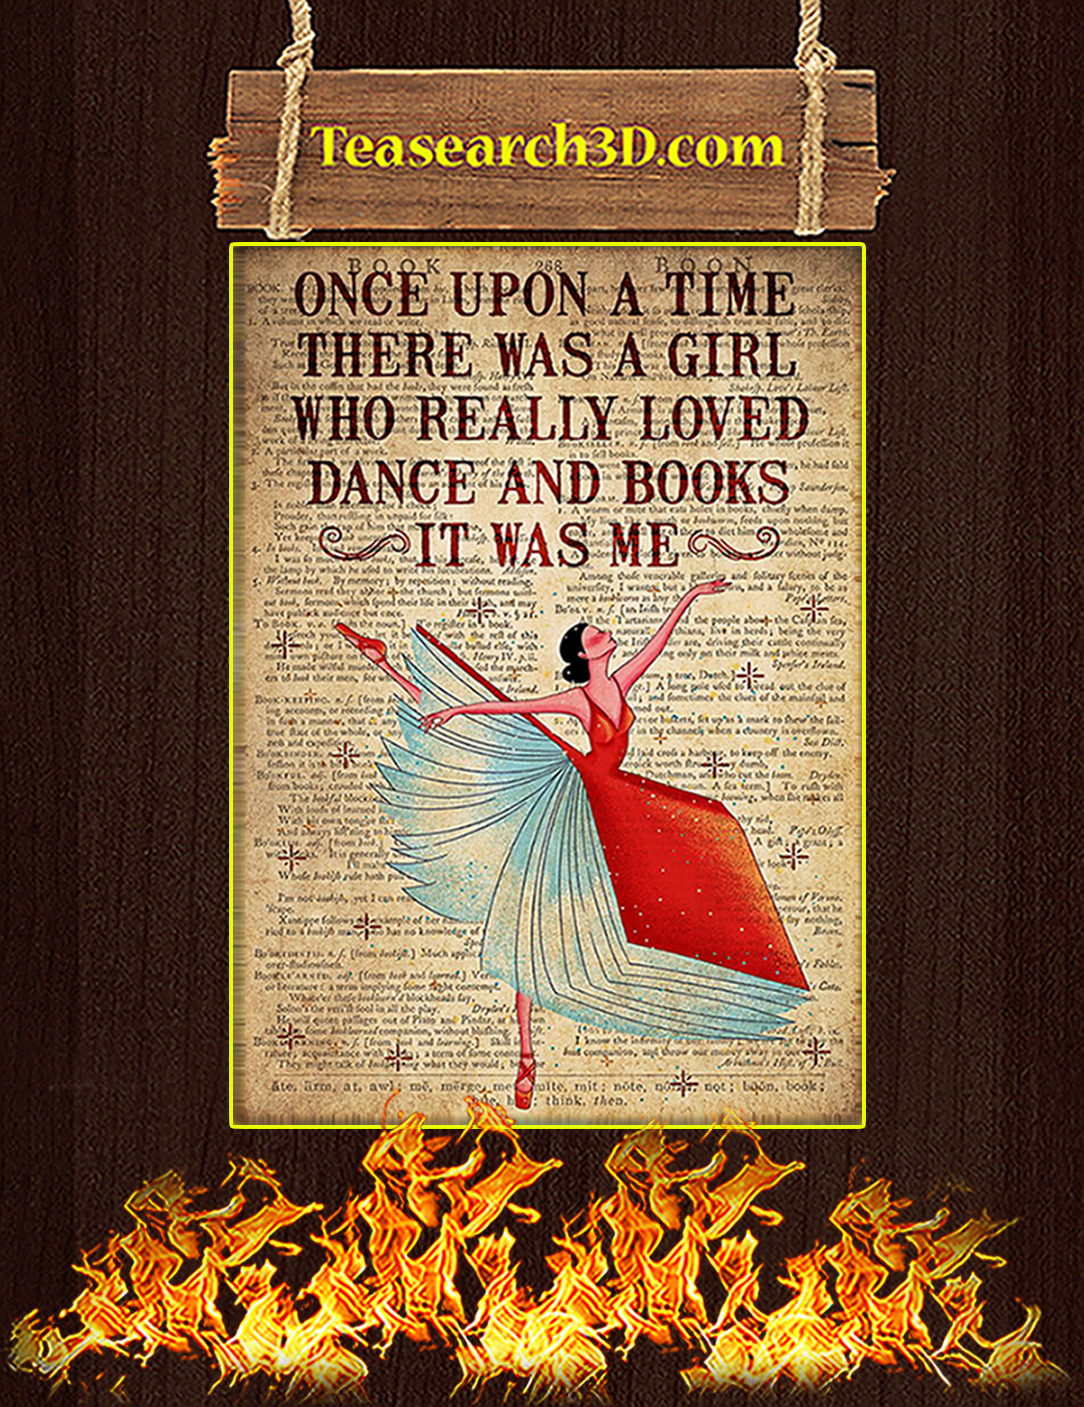 Once Upon A Time There Was A Girl Loved Dance and Books Poster A2